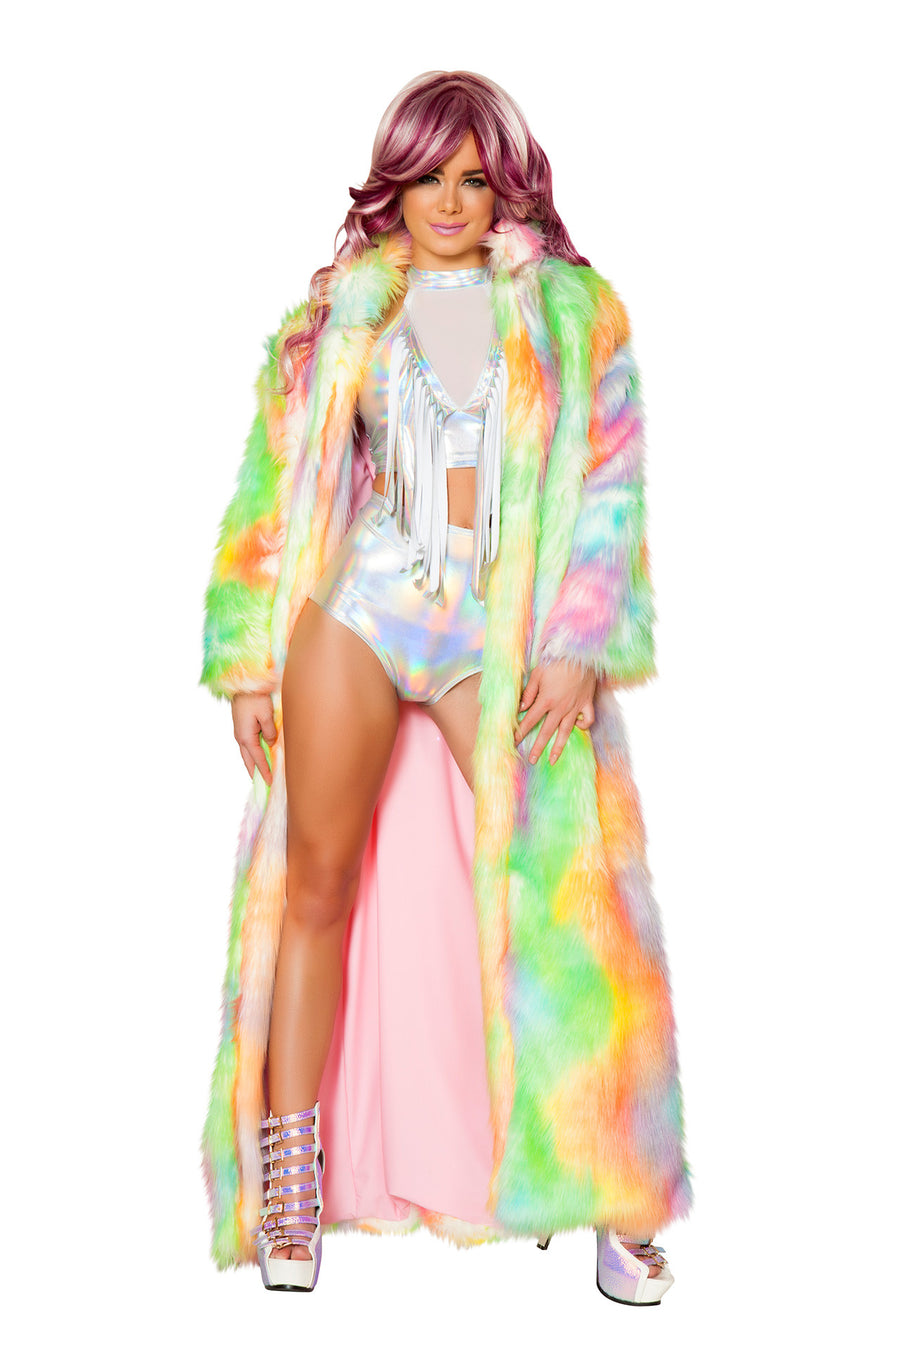 FF420 Rainbow Sherbet Light-Up Full Length Coat